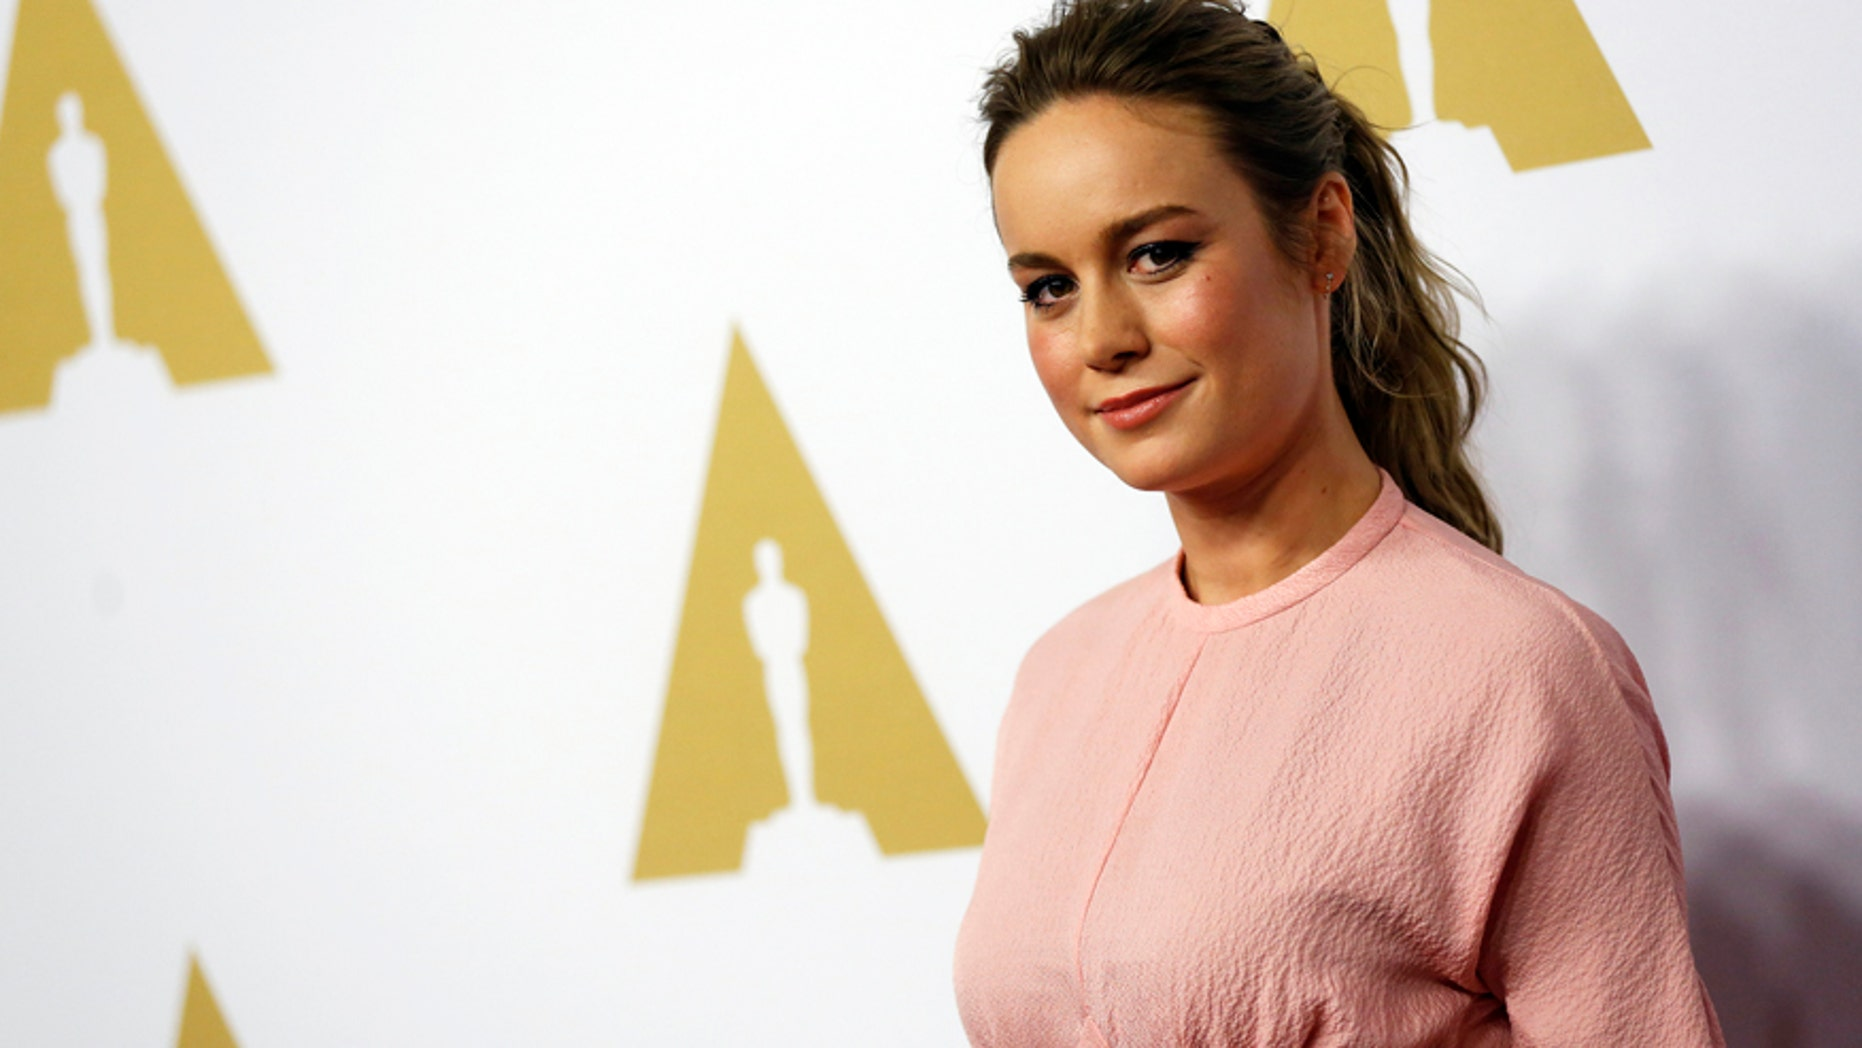 Actress Brie Larson arrives at the 88th Academy Awards nominees luncheon in Beverly Hills, California February 8, 2016.  REUTERS/Mario Anzuoni - RTX261YP